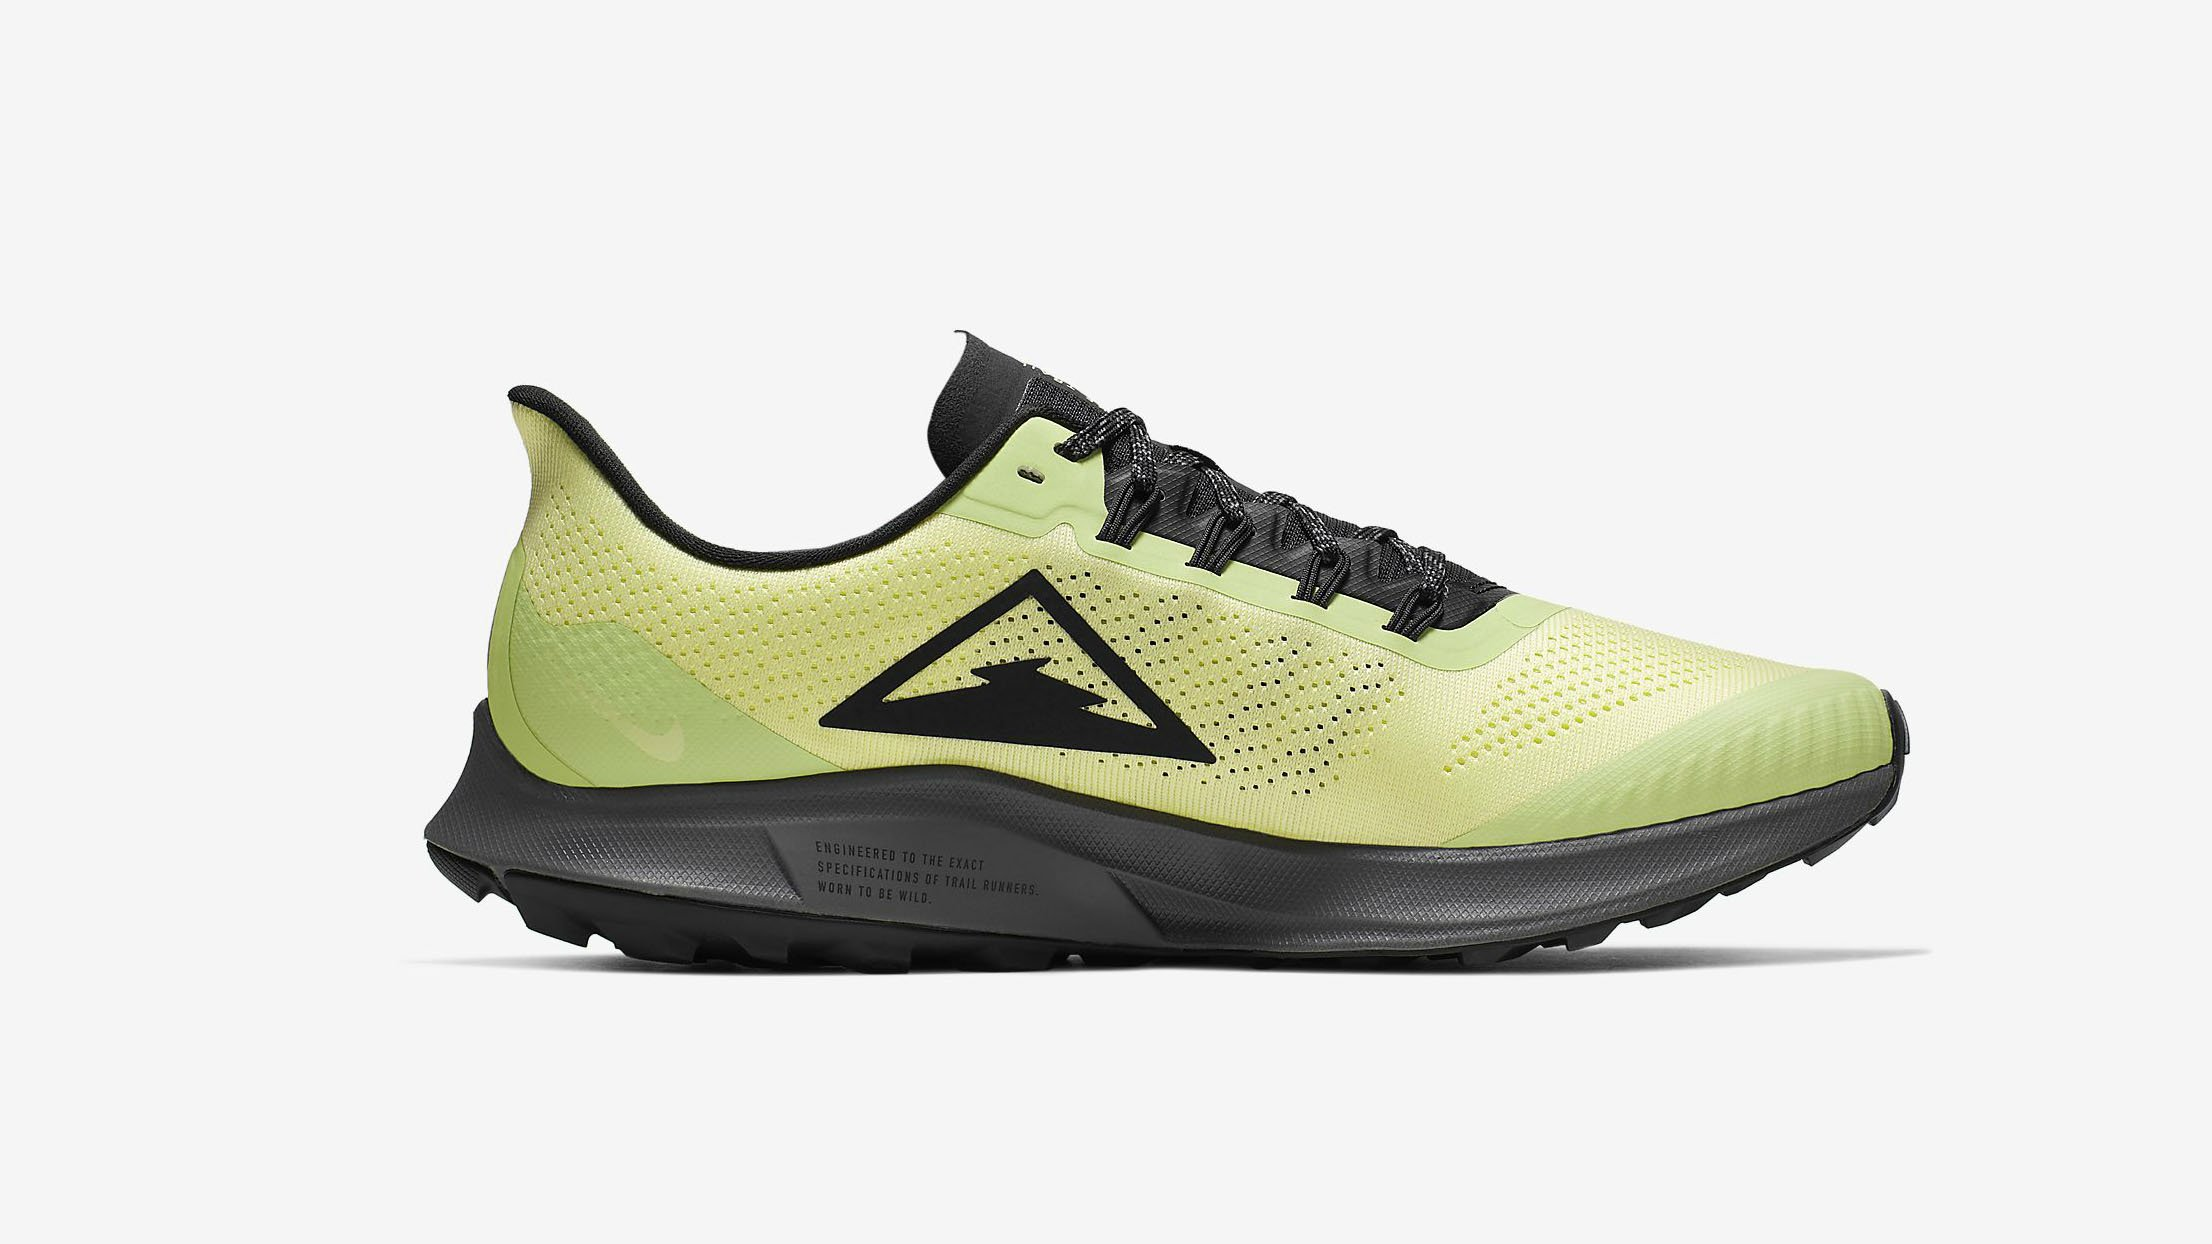 0e9a38ba9 ... road shoes has been the go-to option for many runners for more than  three-and-a-half decades. However, for all its versatility when it comes to  training ...